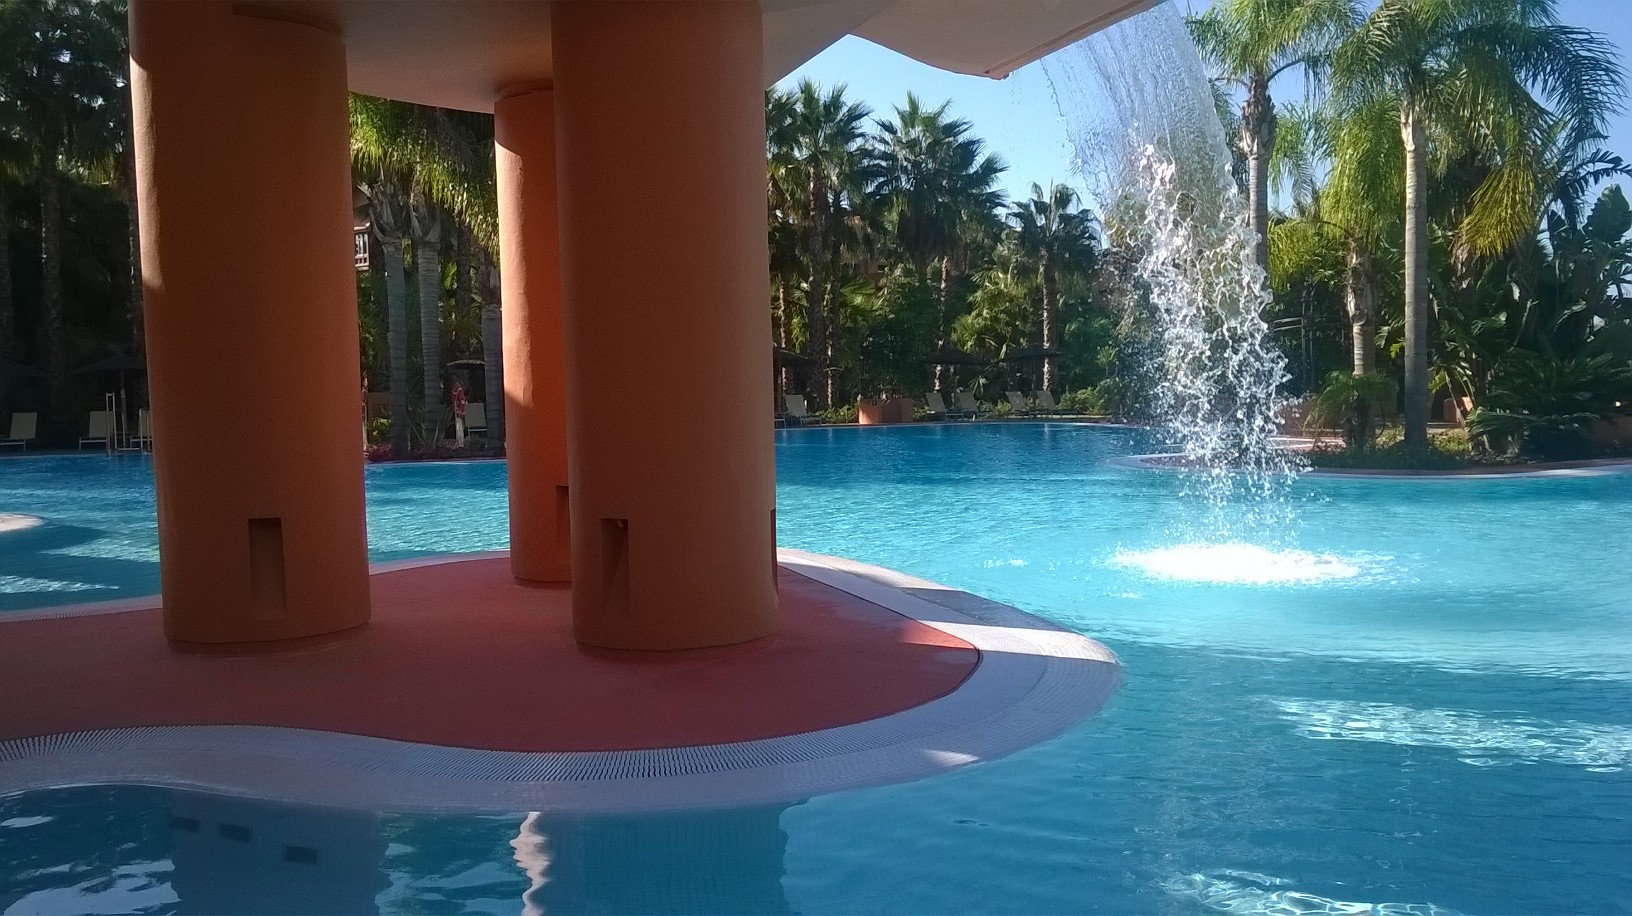 chipiona-barcelo-pool-waterfall-oct15